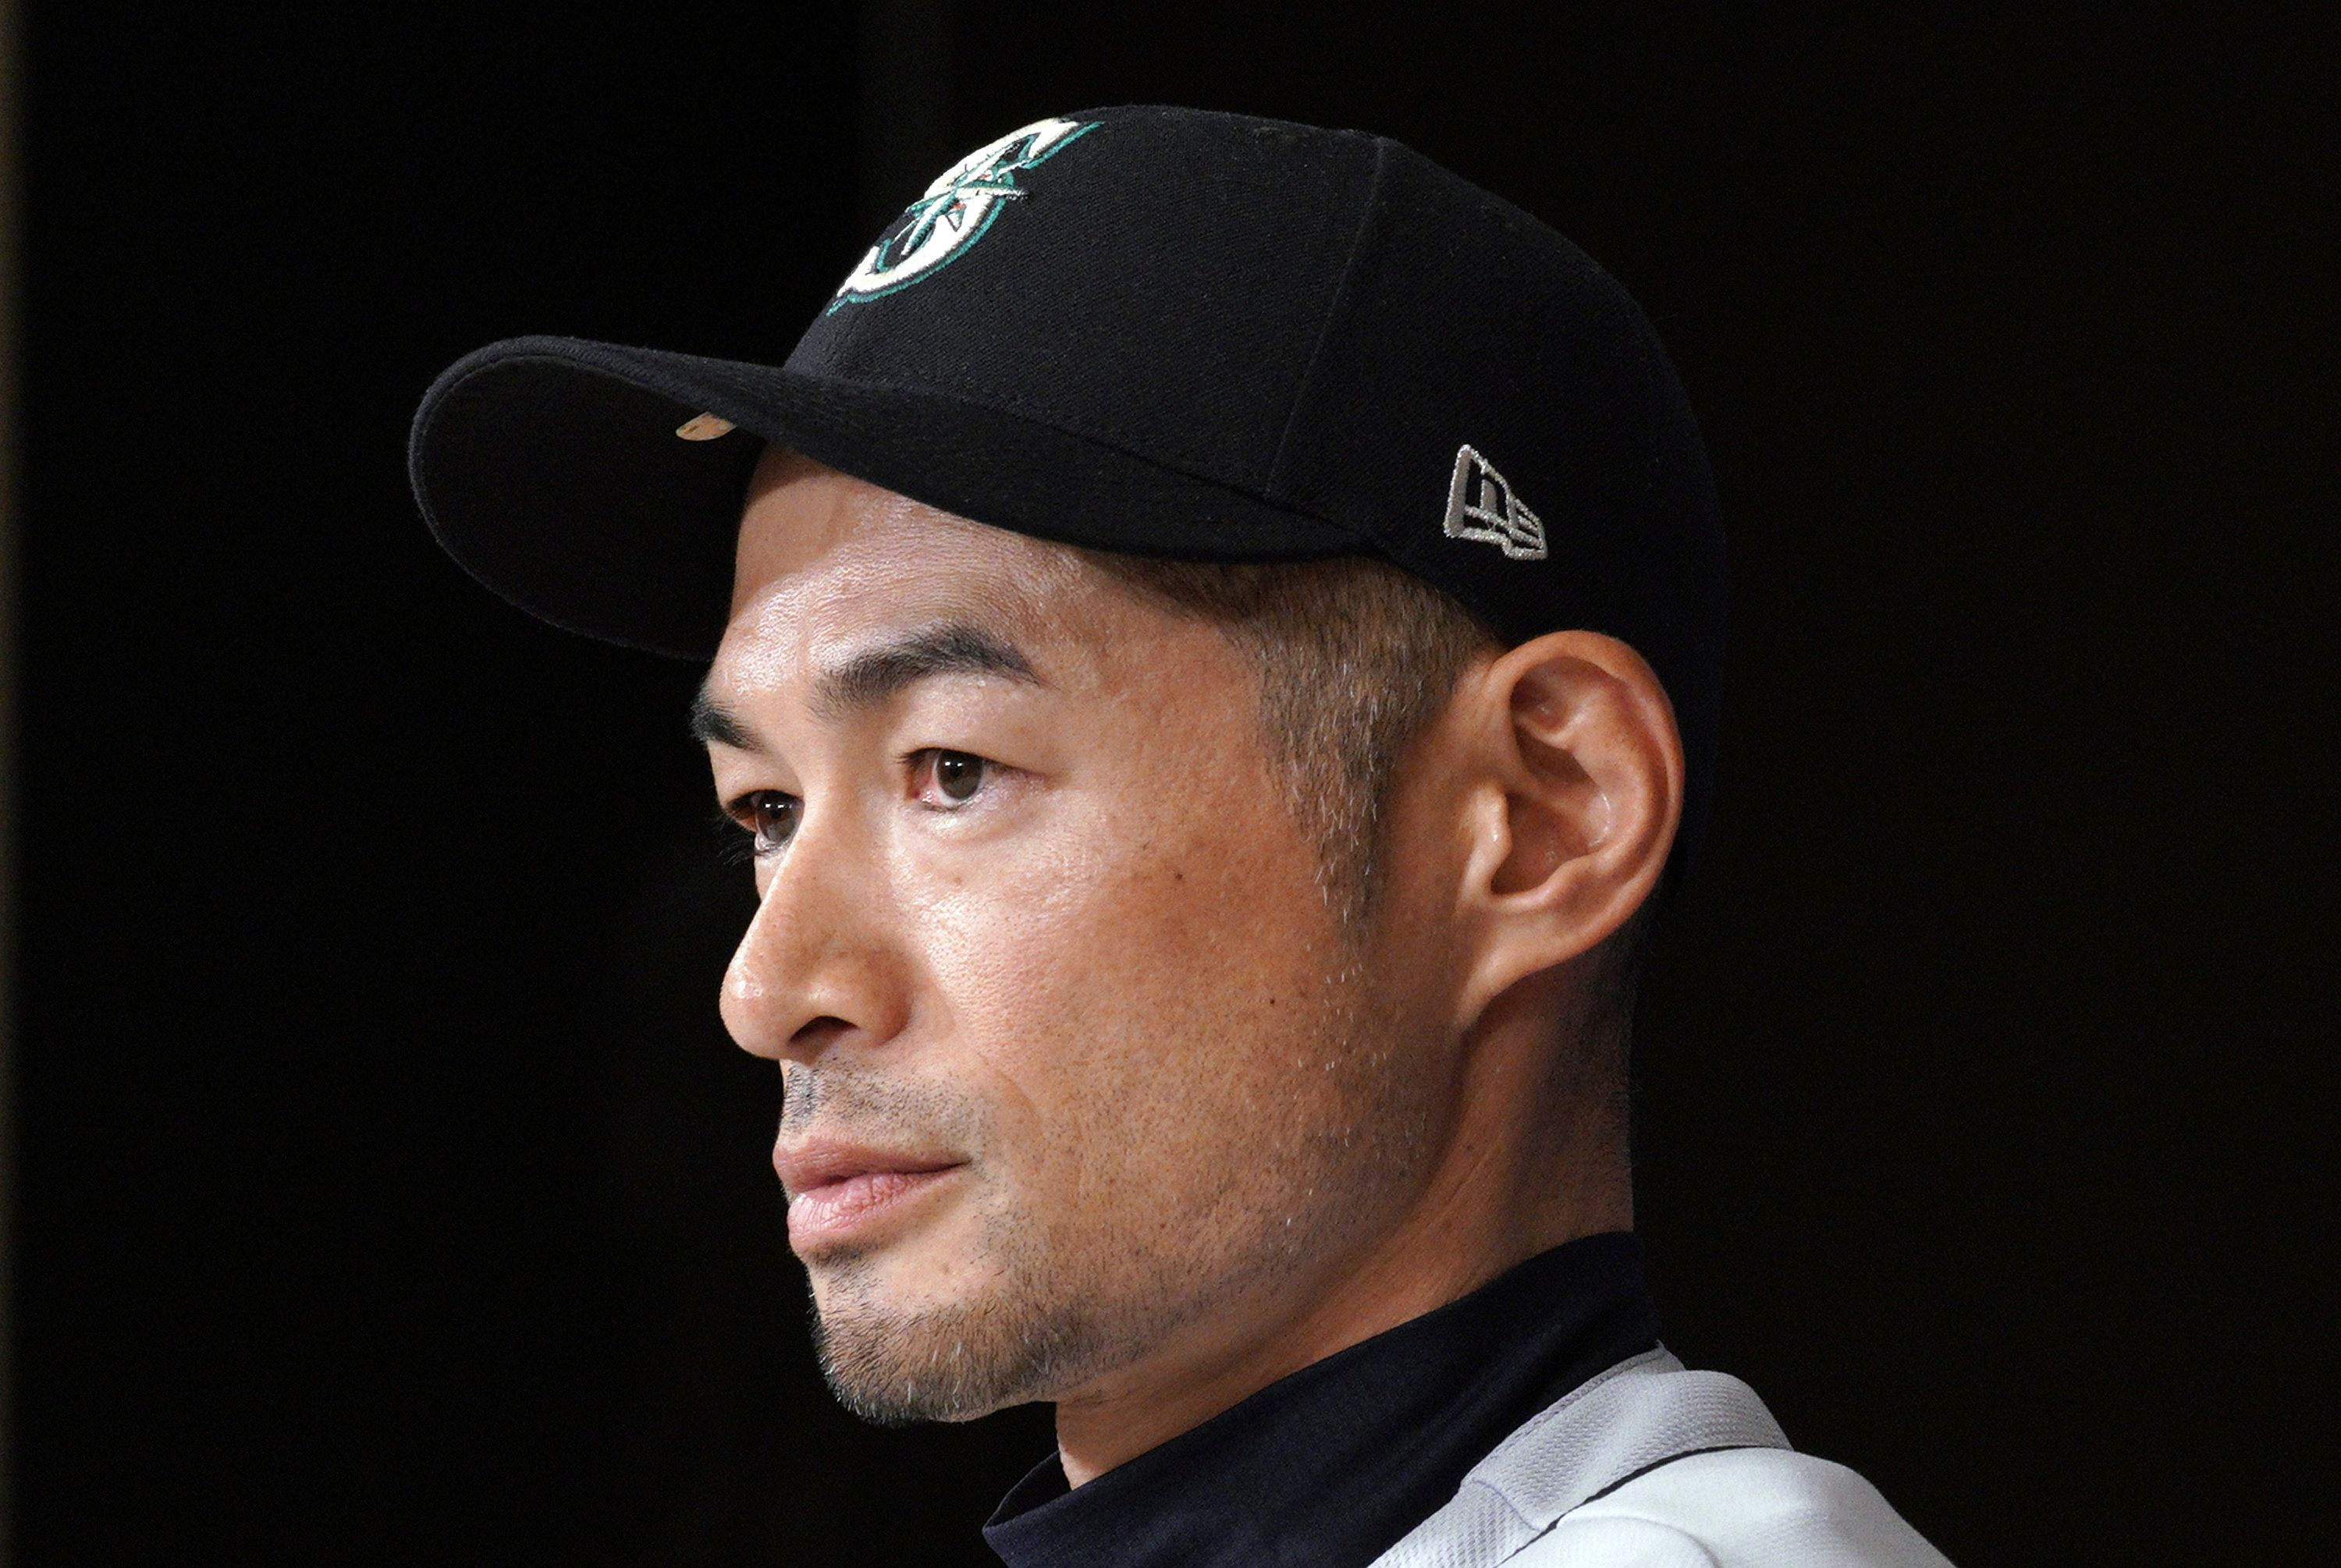 Seattle Mariners right fielder Ichiro Suzuki announces his retirement during a press conference after Game 2 of the Major League baseball opening series between the Mariners and the Oakland Athletics in Tokyo Friday, March 22, 2019. (AP Photo/Eugene Hoshiko)